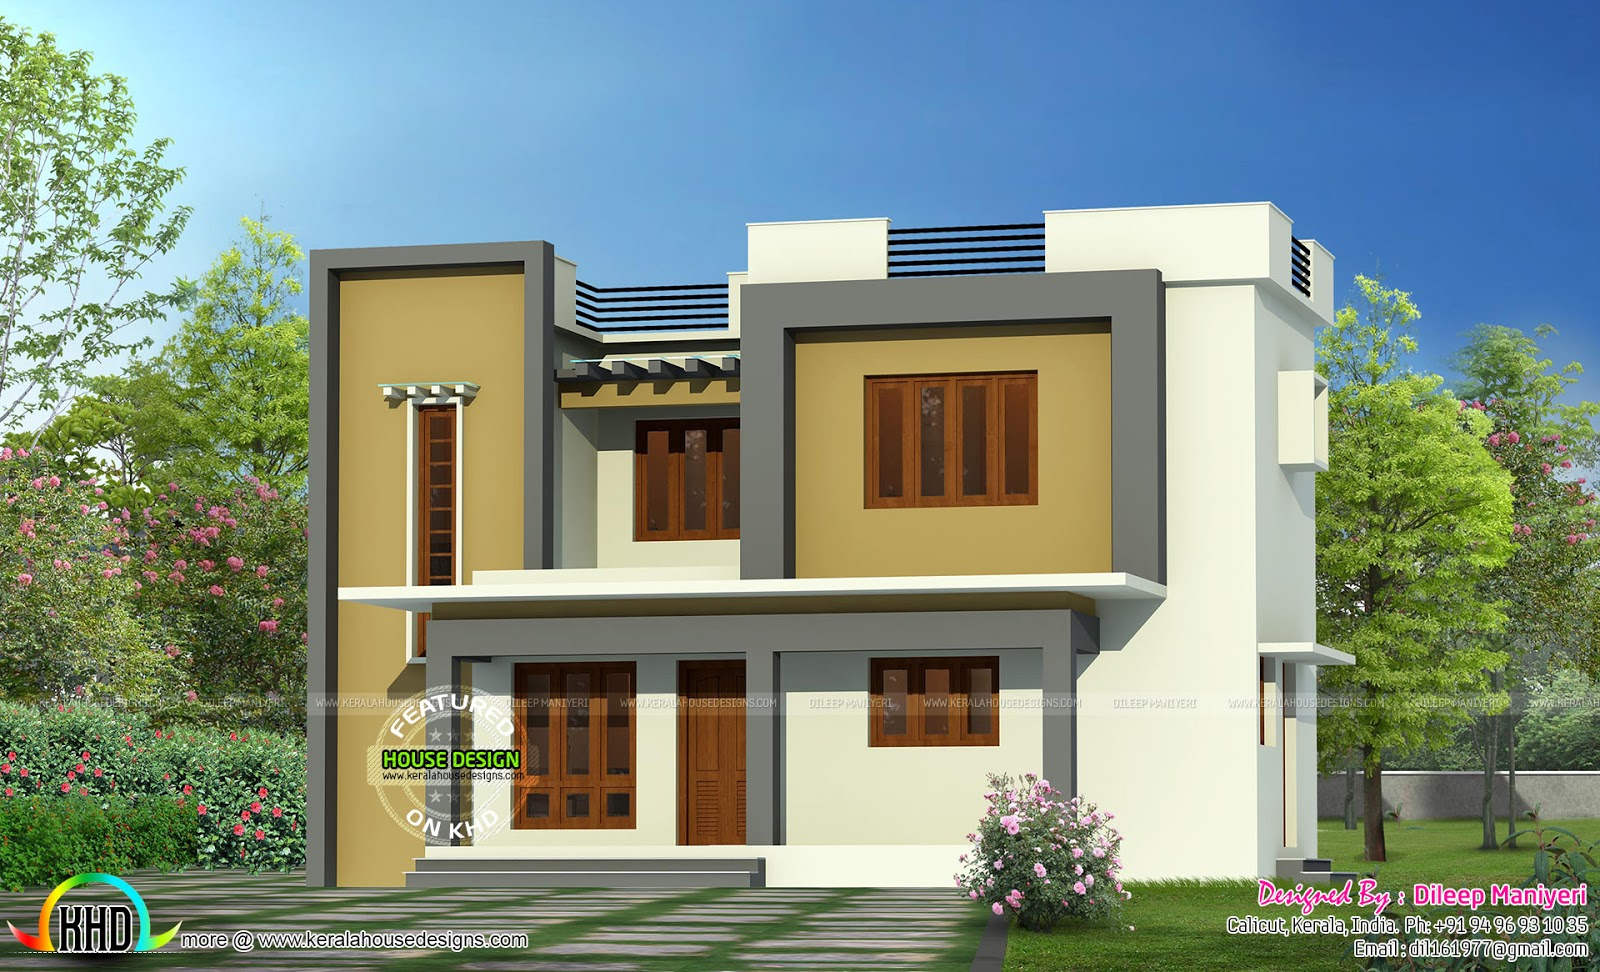 Simple flat roof home architecture - Kerala home design ...